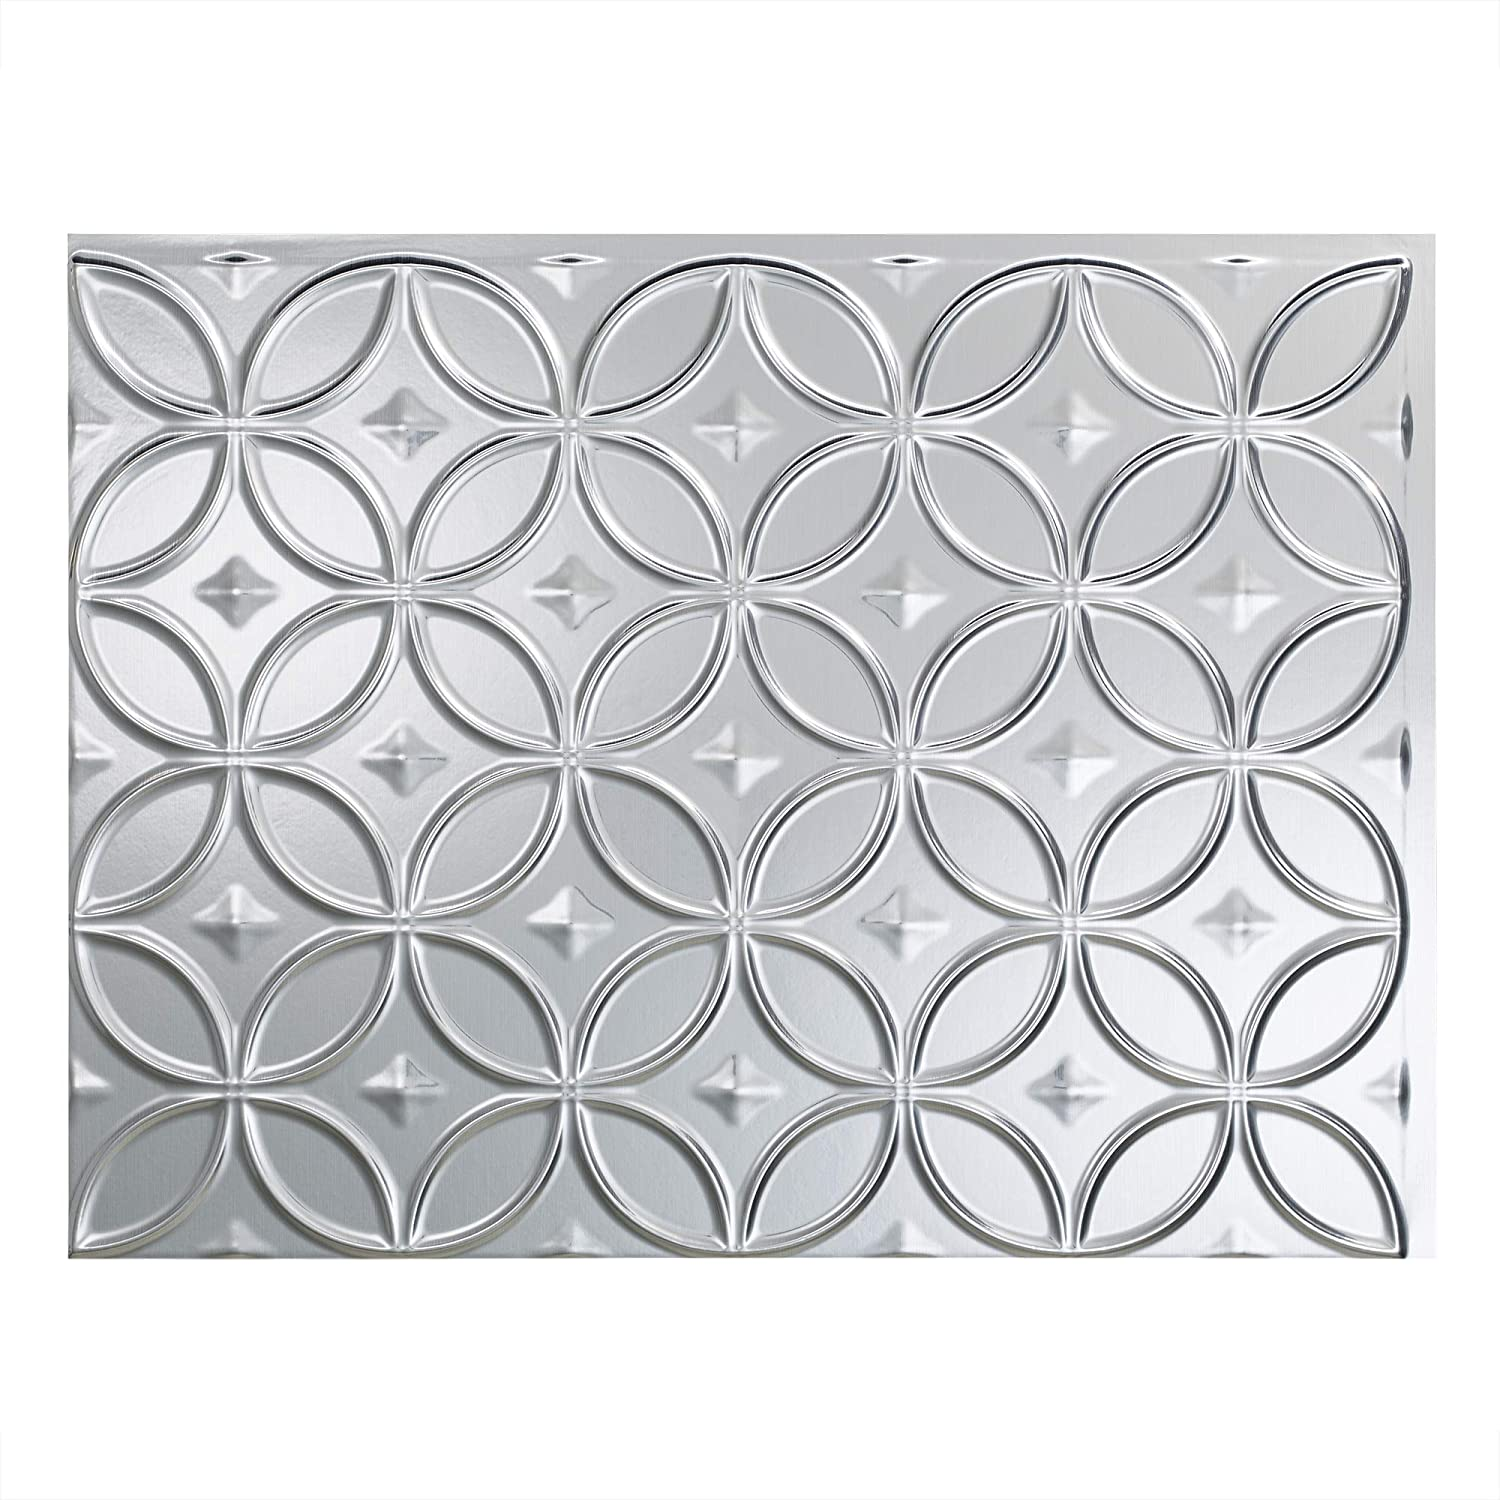 - FASÄDE Rings Decorative Vinyl Backsplash Panel In Brushed Aluminum